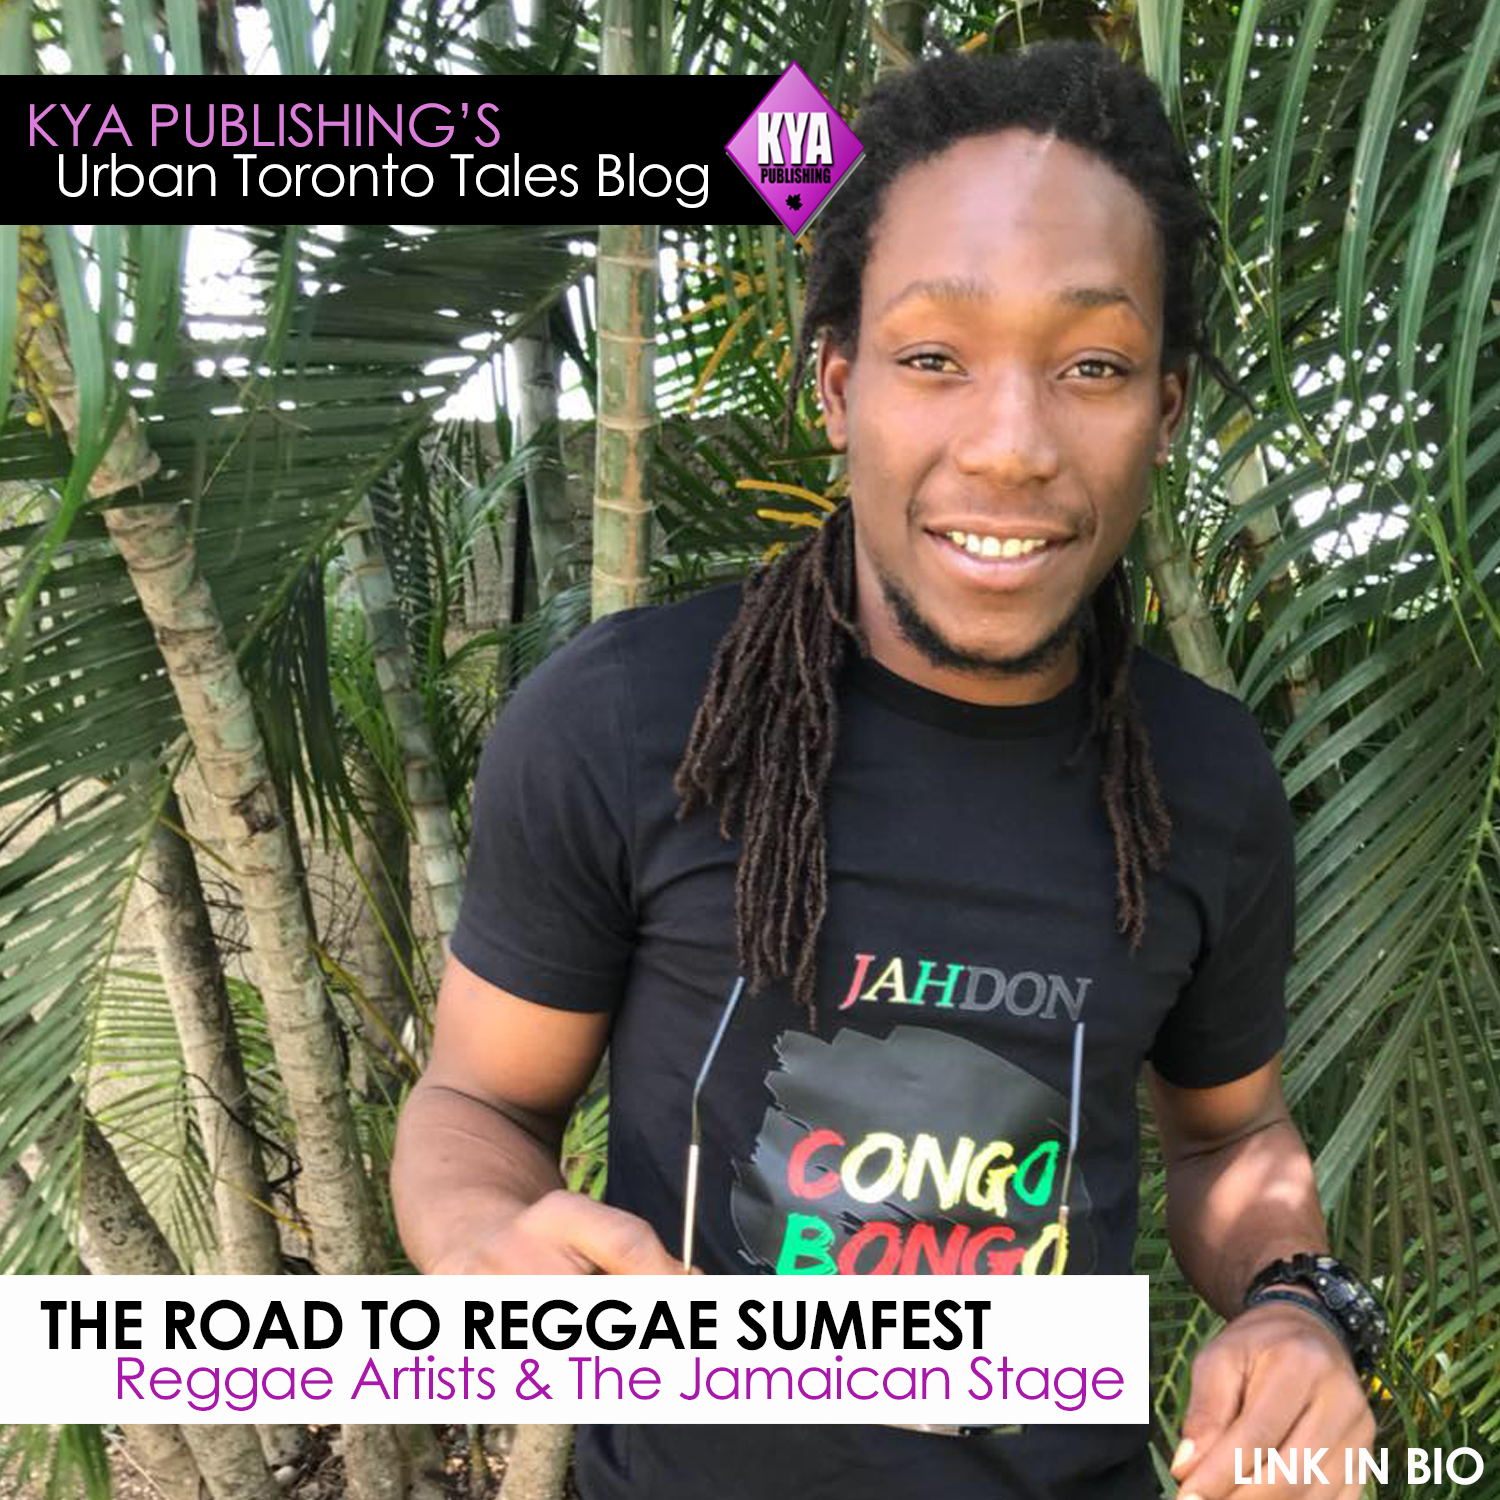 Kya Publishing's URBAN TORONTO TALES: Reggae Artists and the Road to